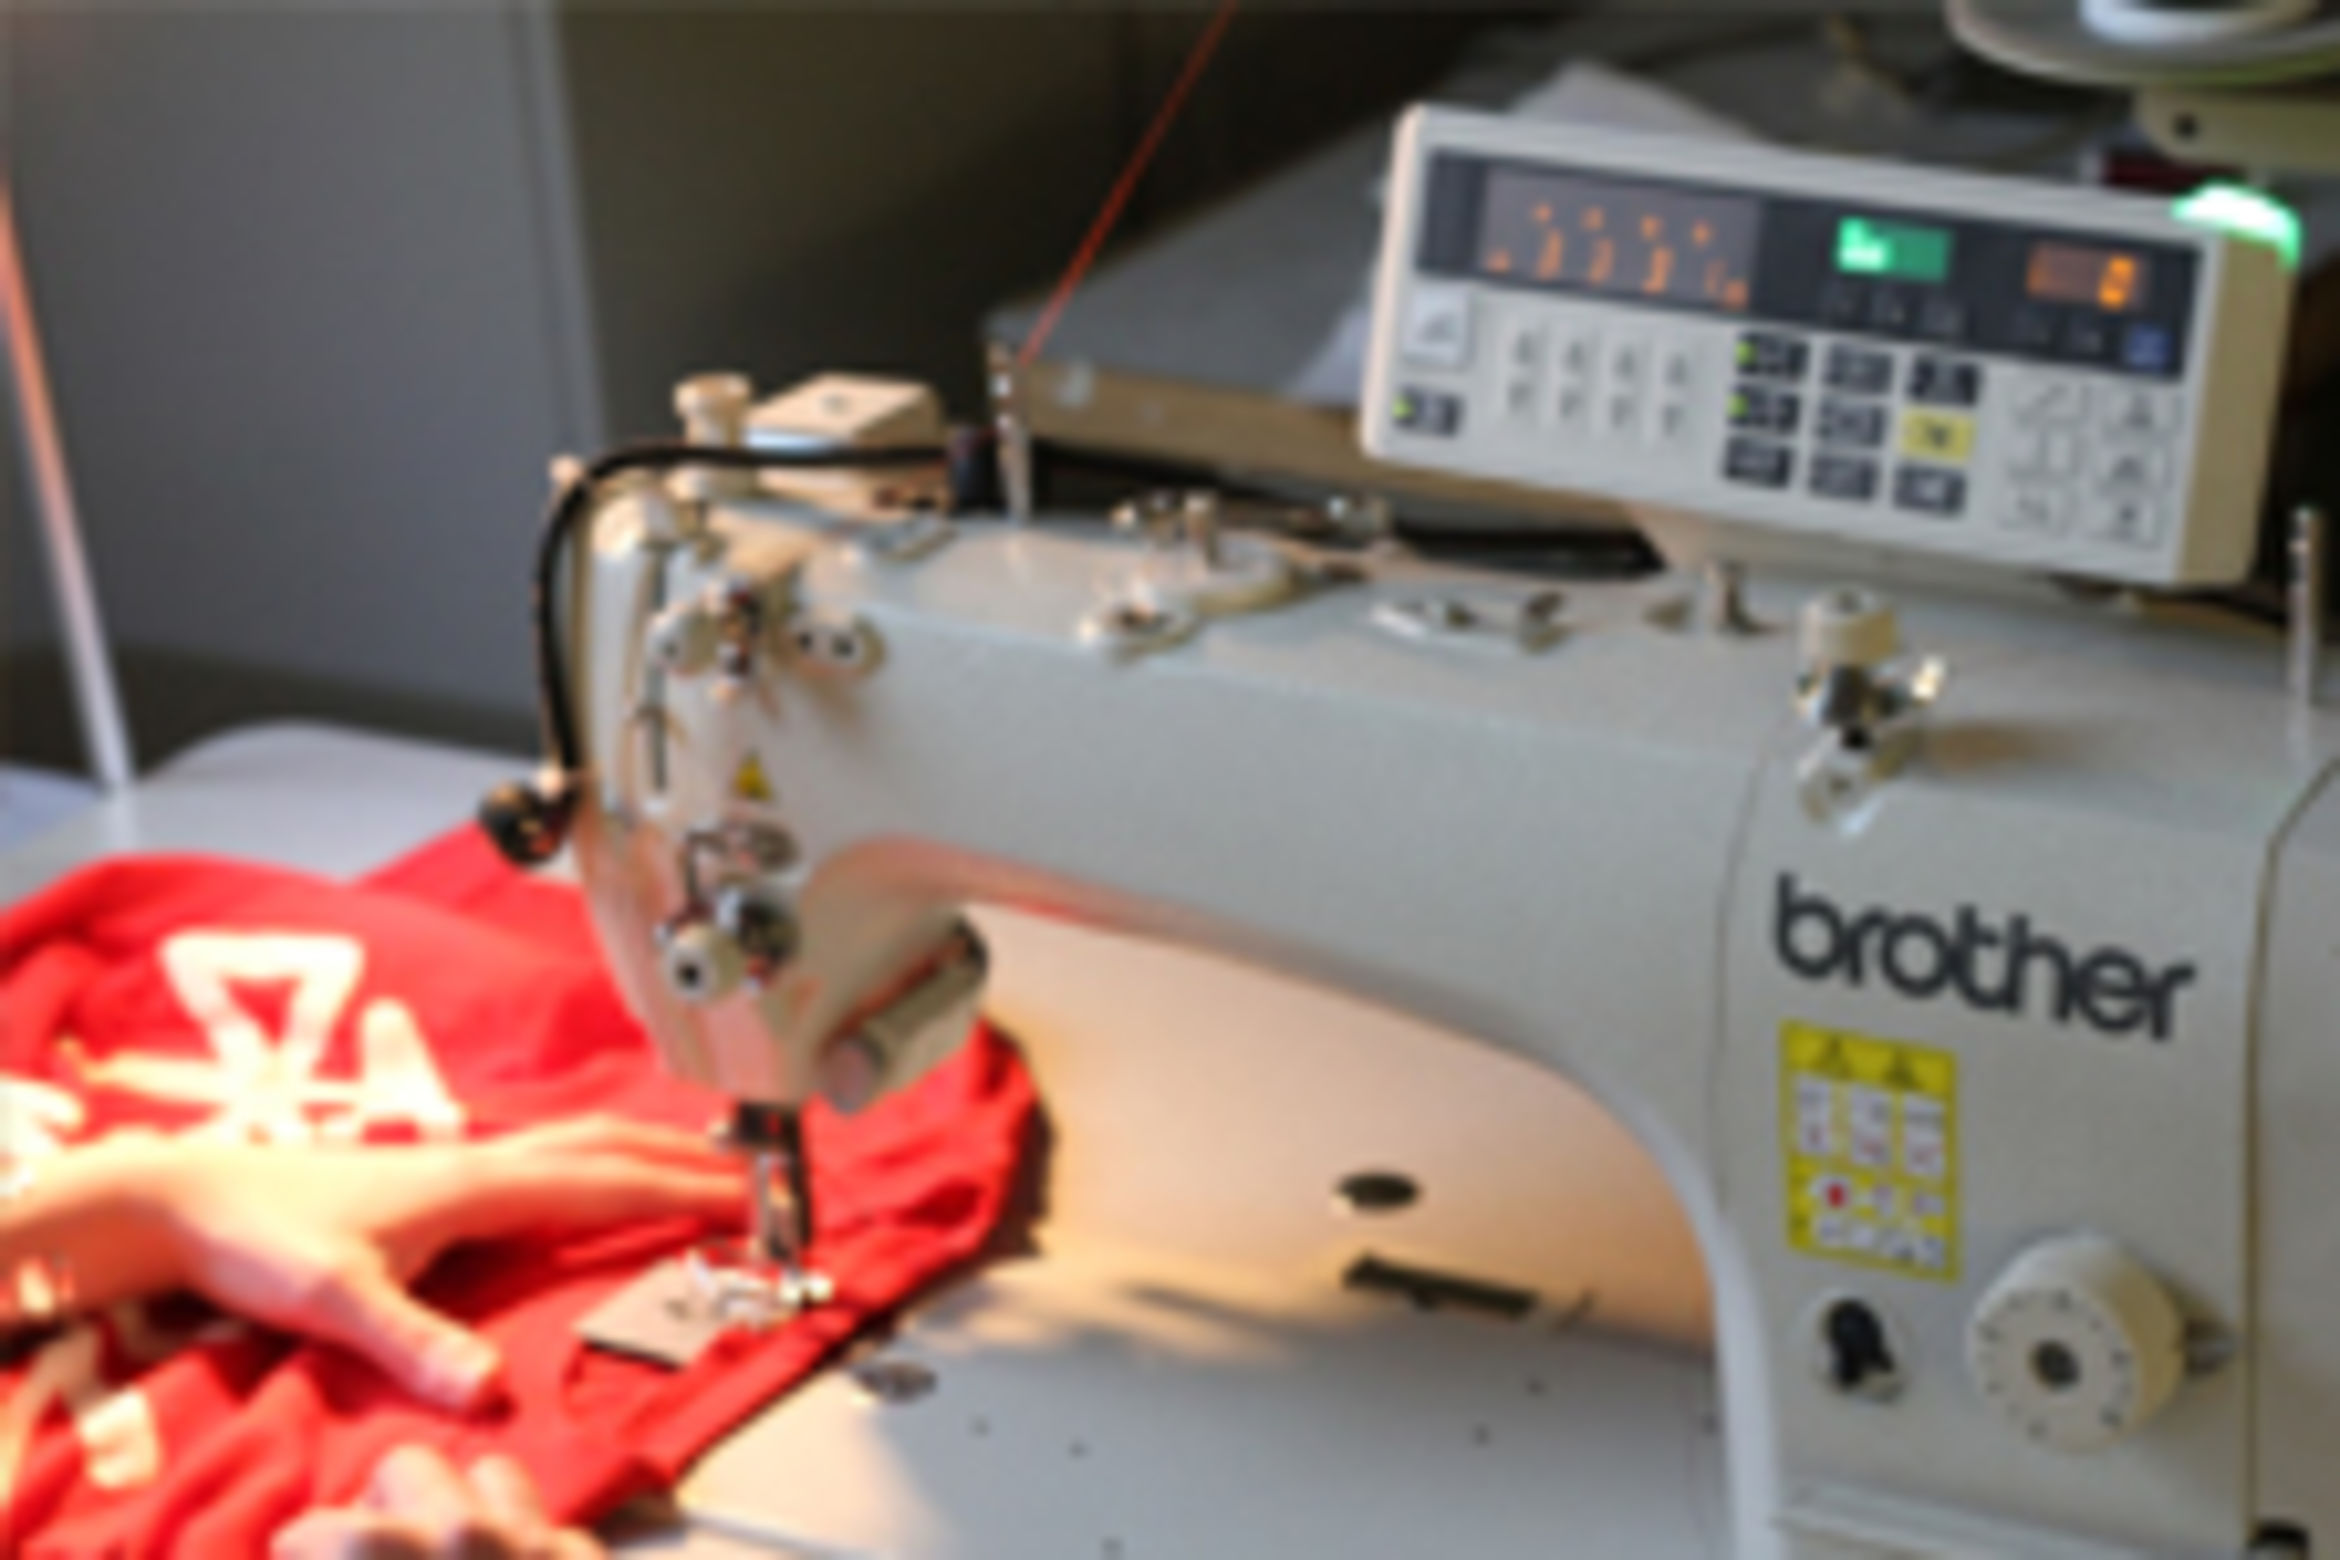 The EPCC only  use Brother sewing machines, the best in the industry